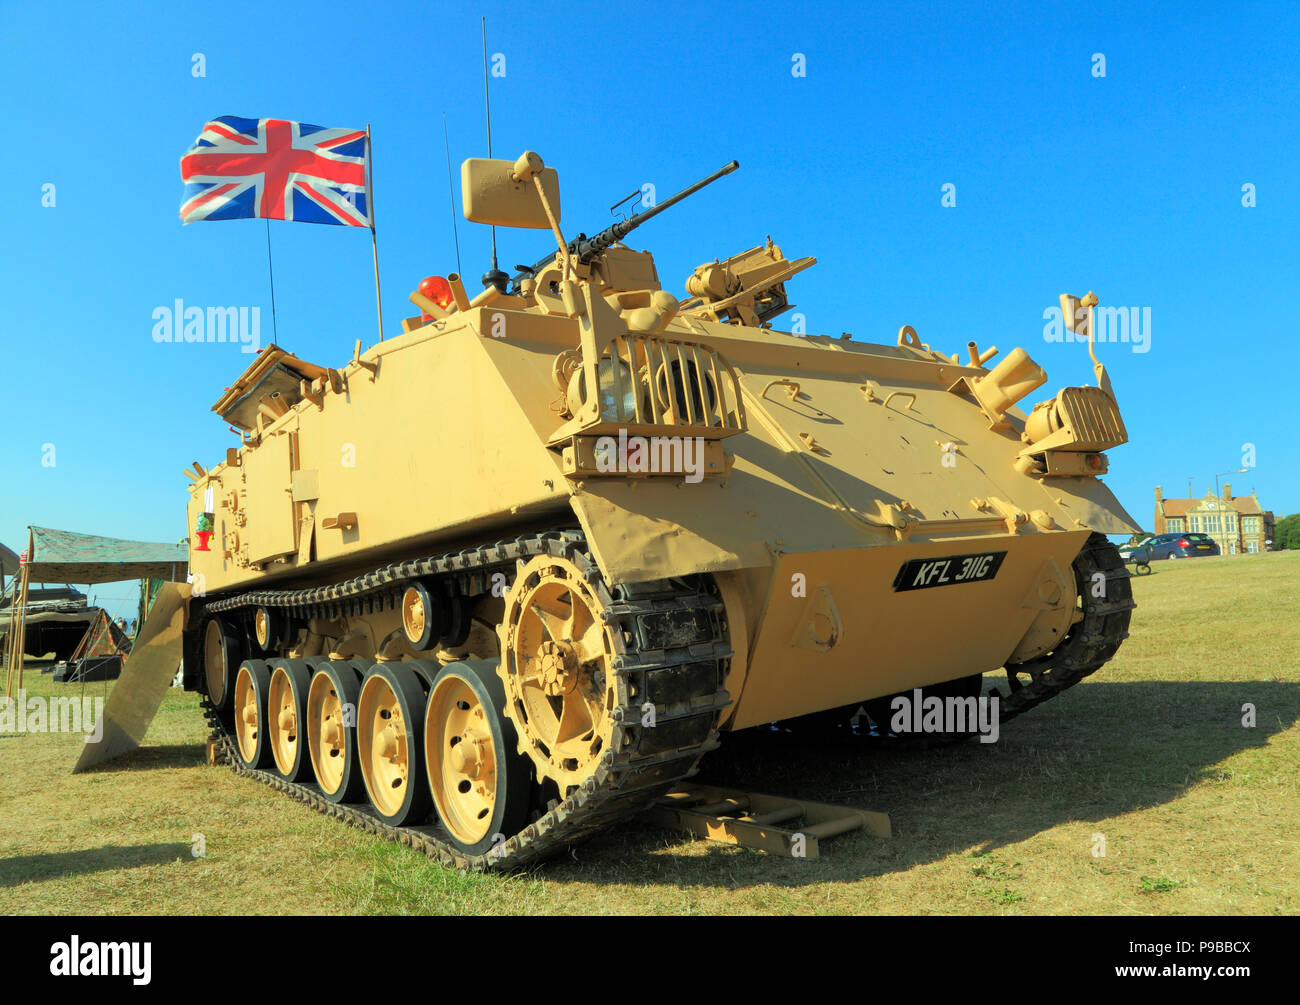 British 432 Tank, military vehicle, served in 1st Iraq conflict, vintage, military - Stock Image